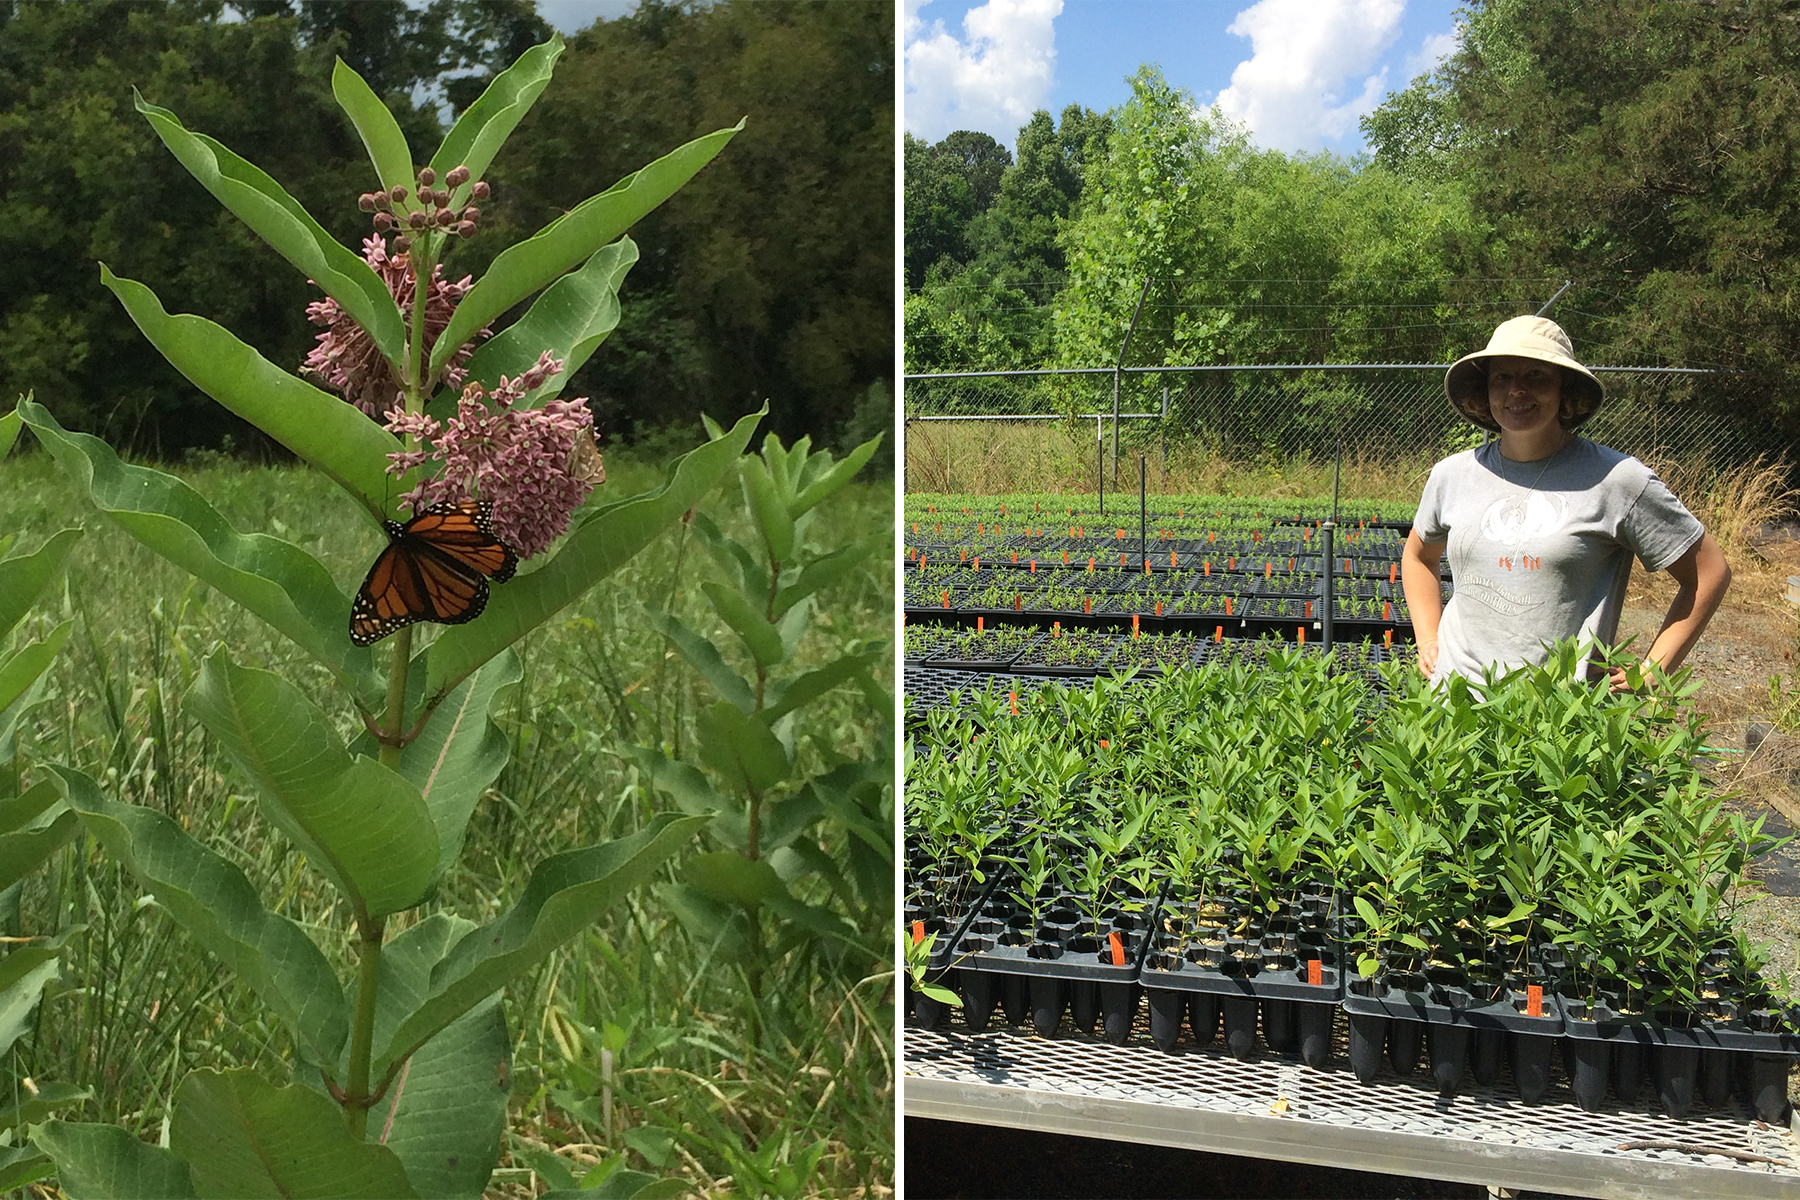 Left image: A monarch butterfly rests on a milkweed plant. Right image: Amanda Faucette stands in a growing garden of milkweed